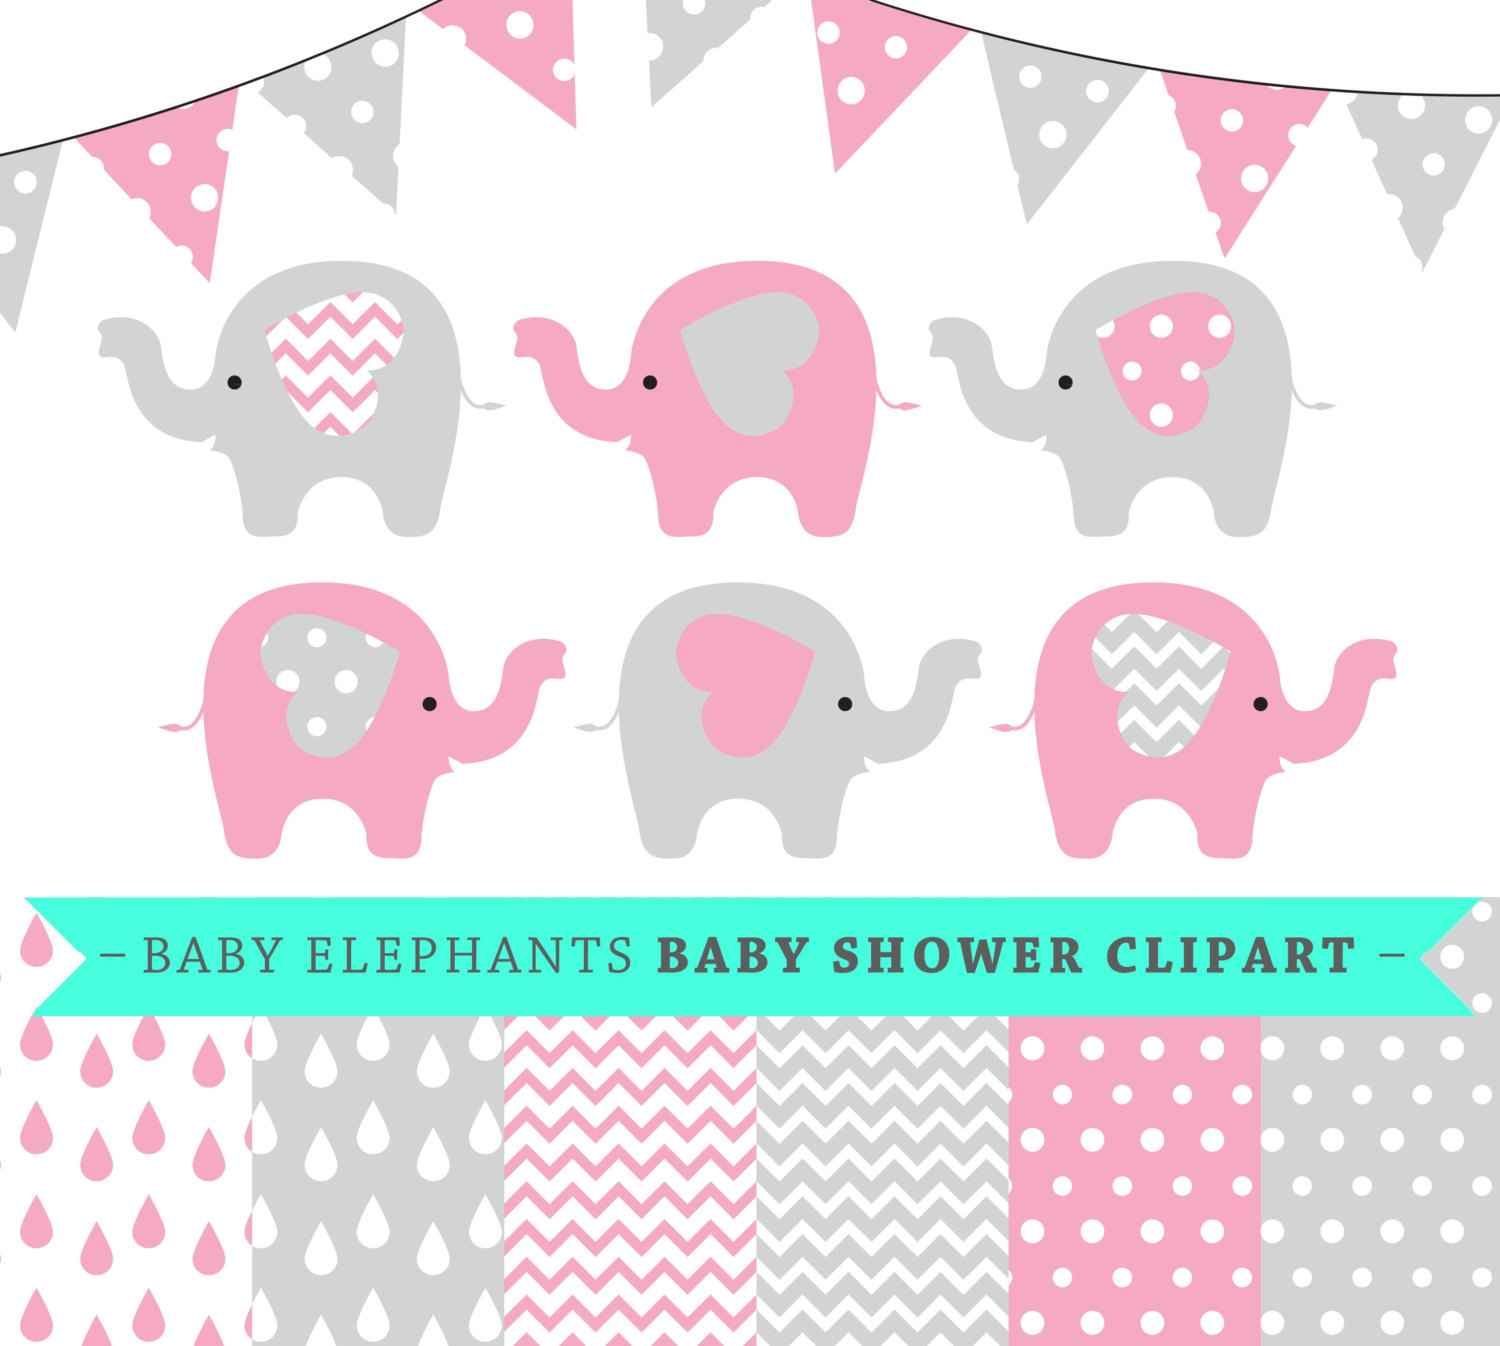 Pink clipart baby elephant Item? baby elephants and vector